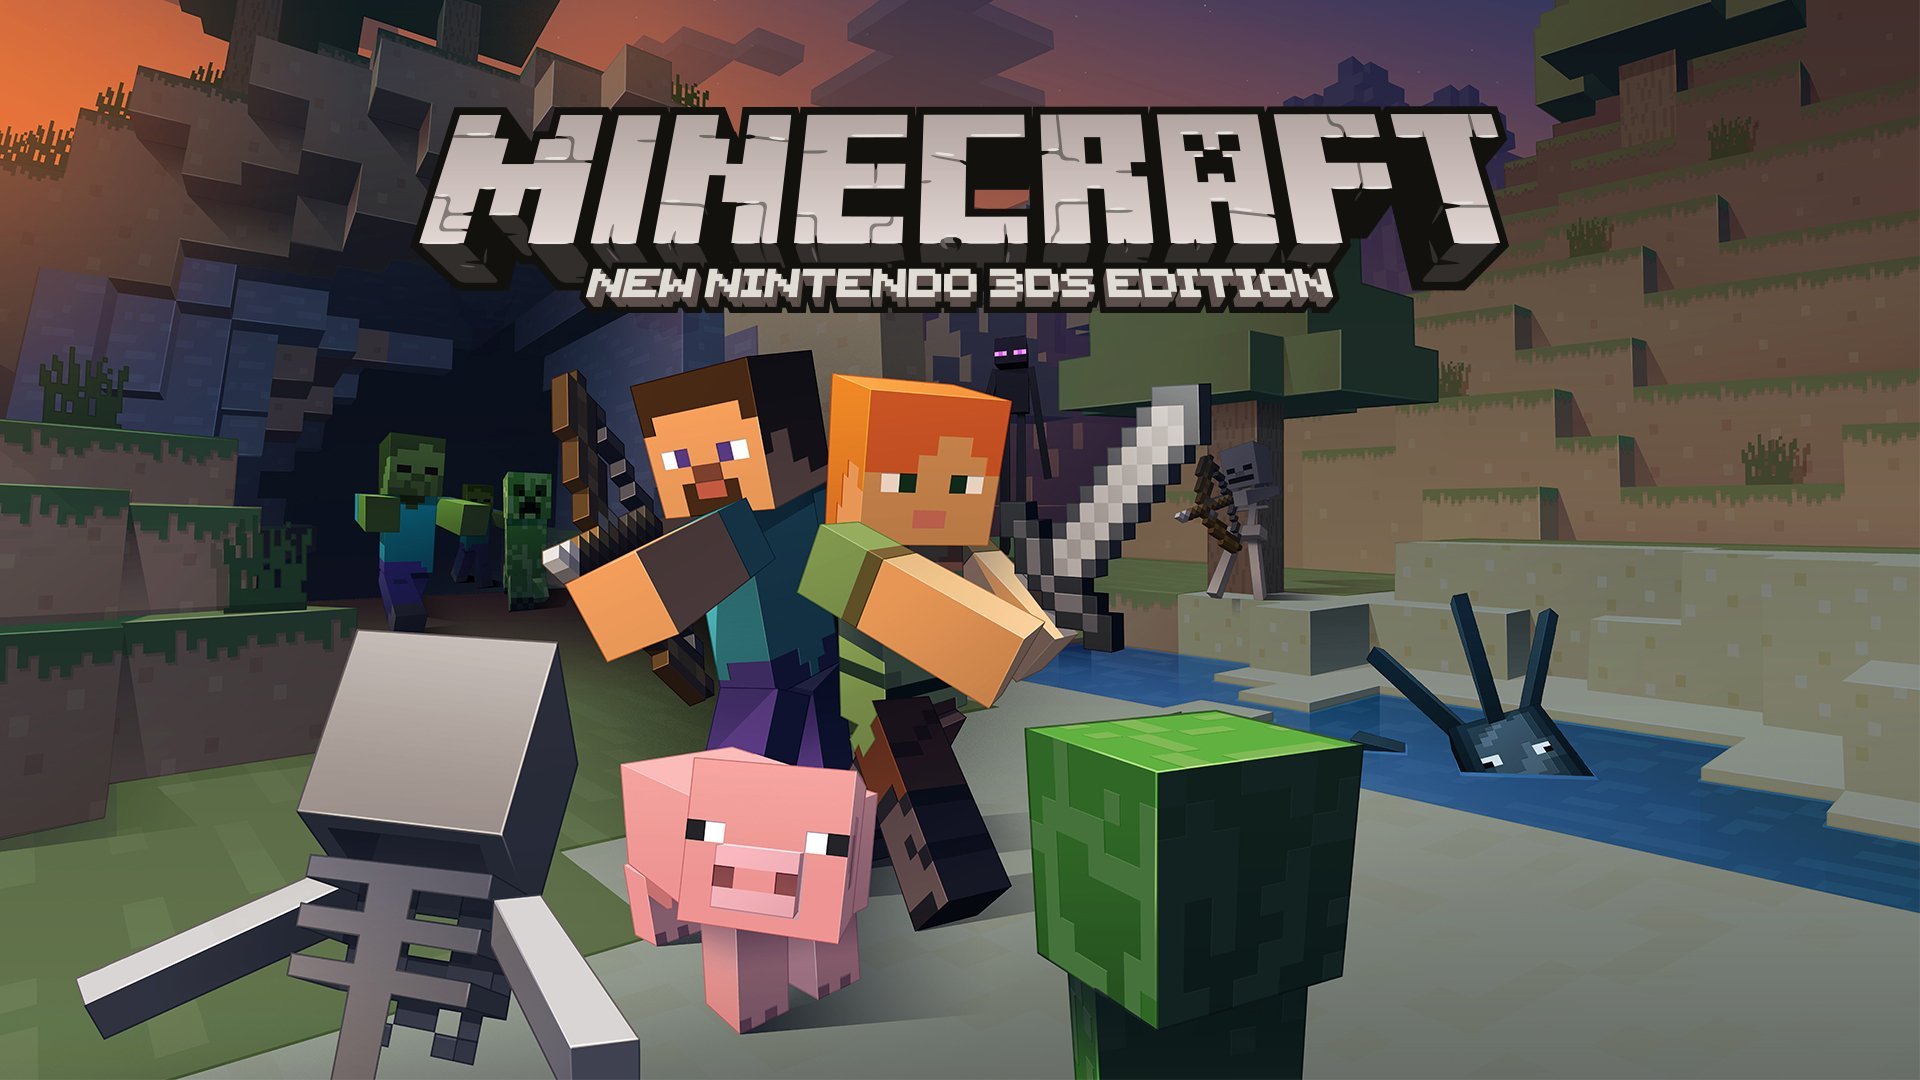 Nintendo Direct: Minecraft New Nintendo 3DS Edition is Coming Soon.